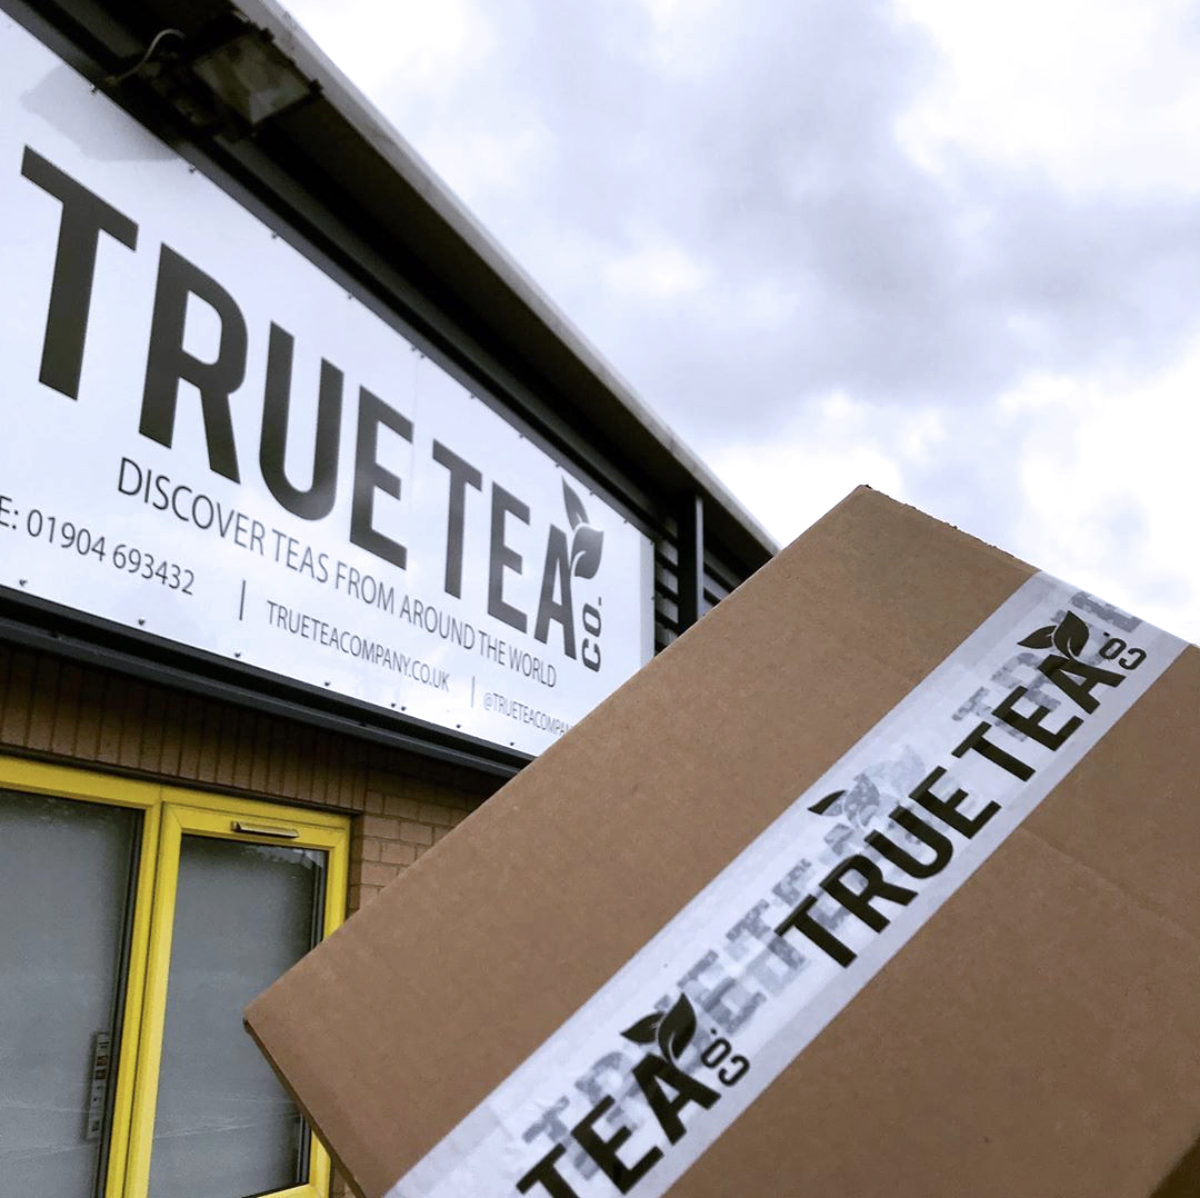 holding a true tea box above our office sign in york